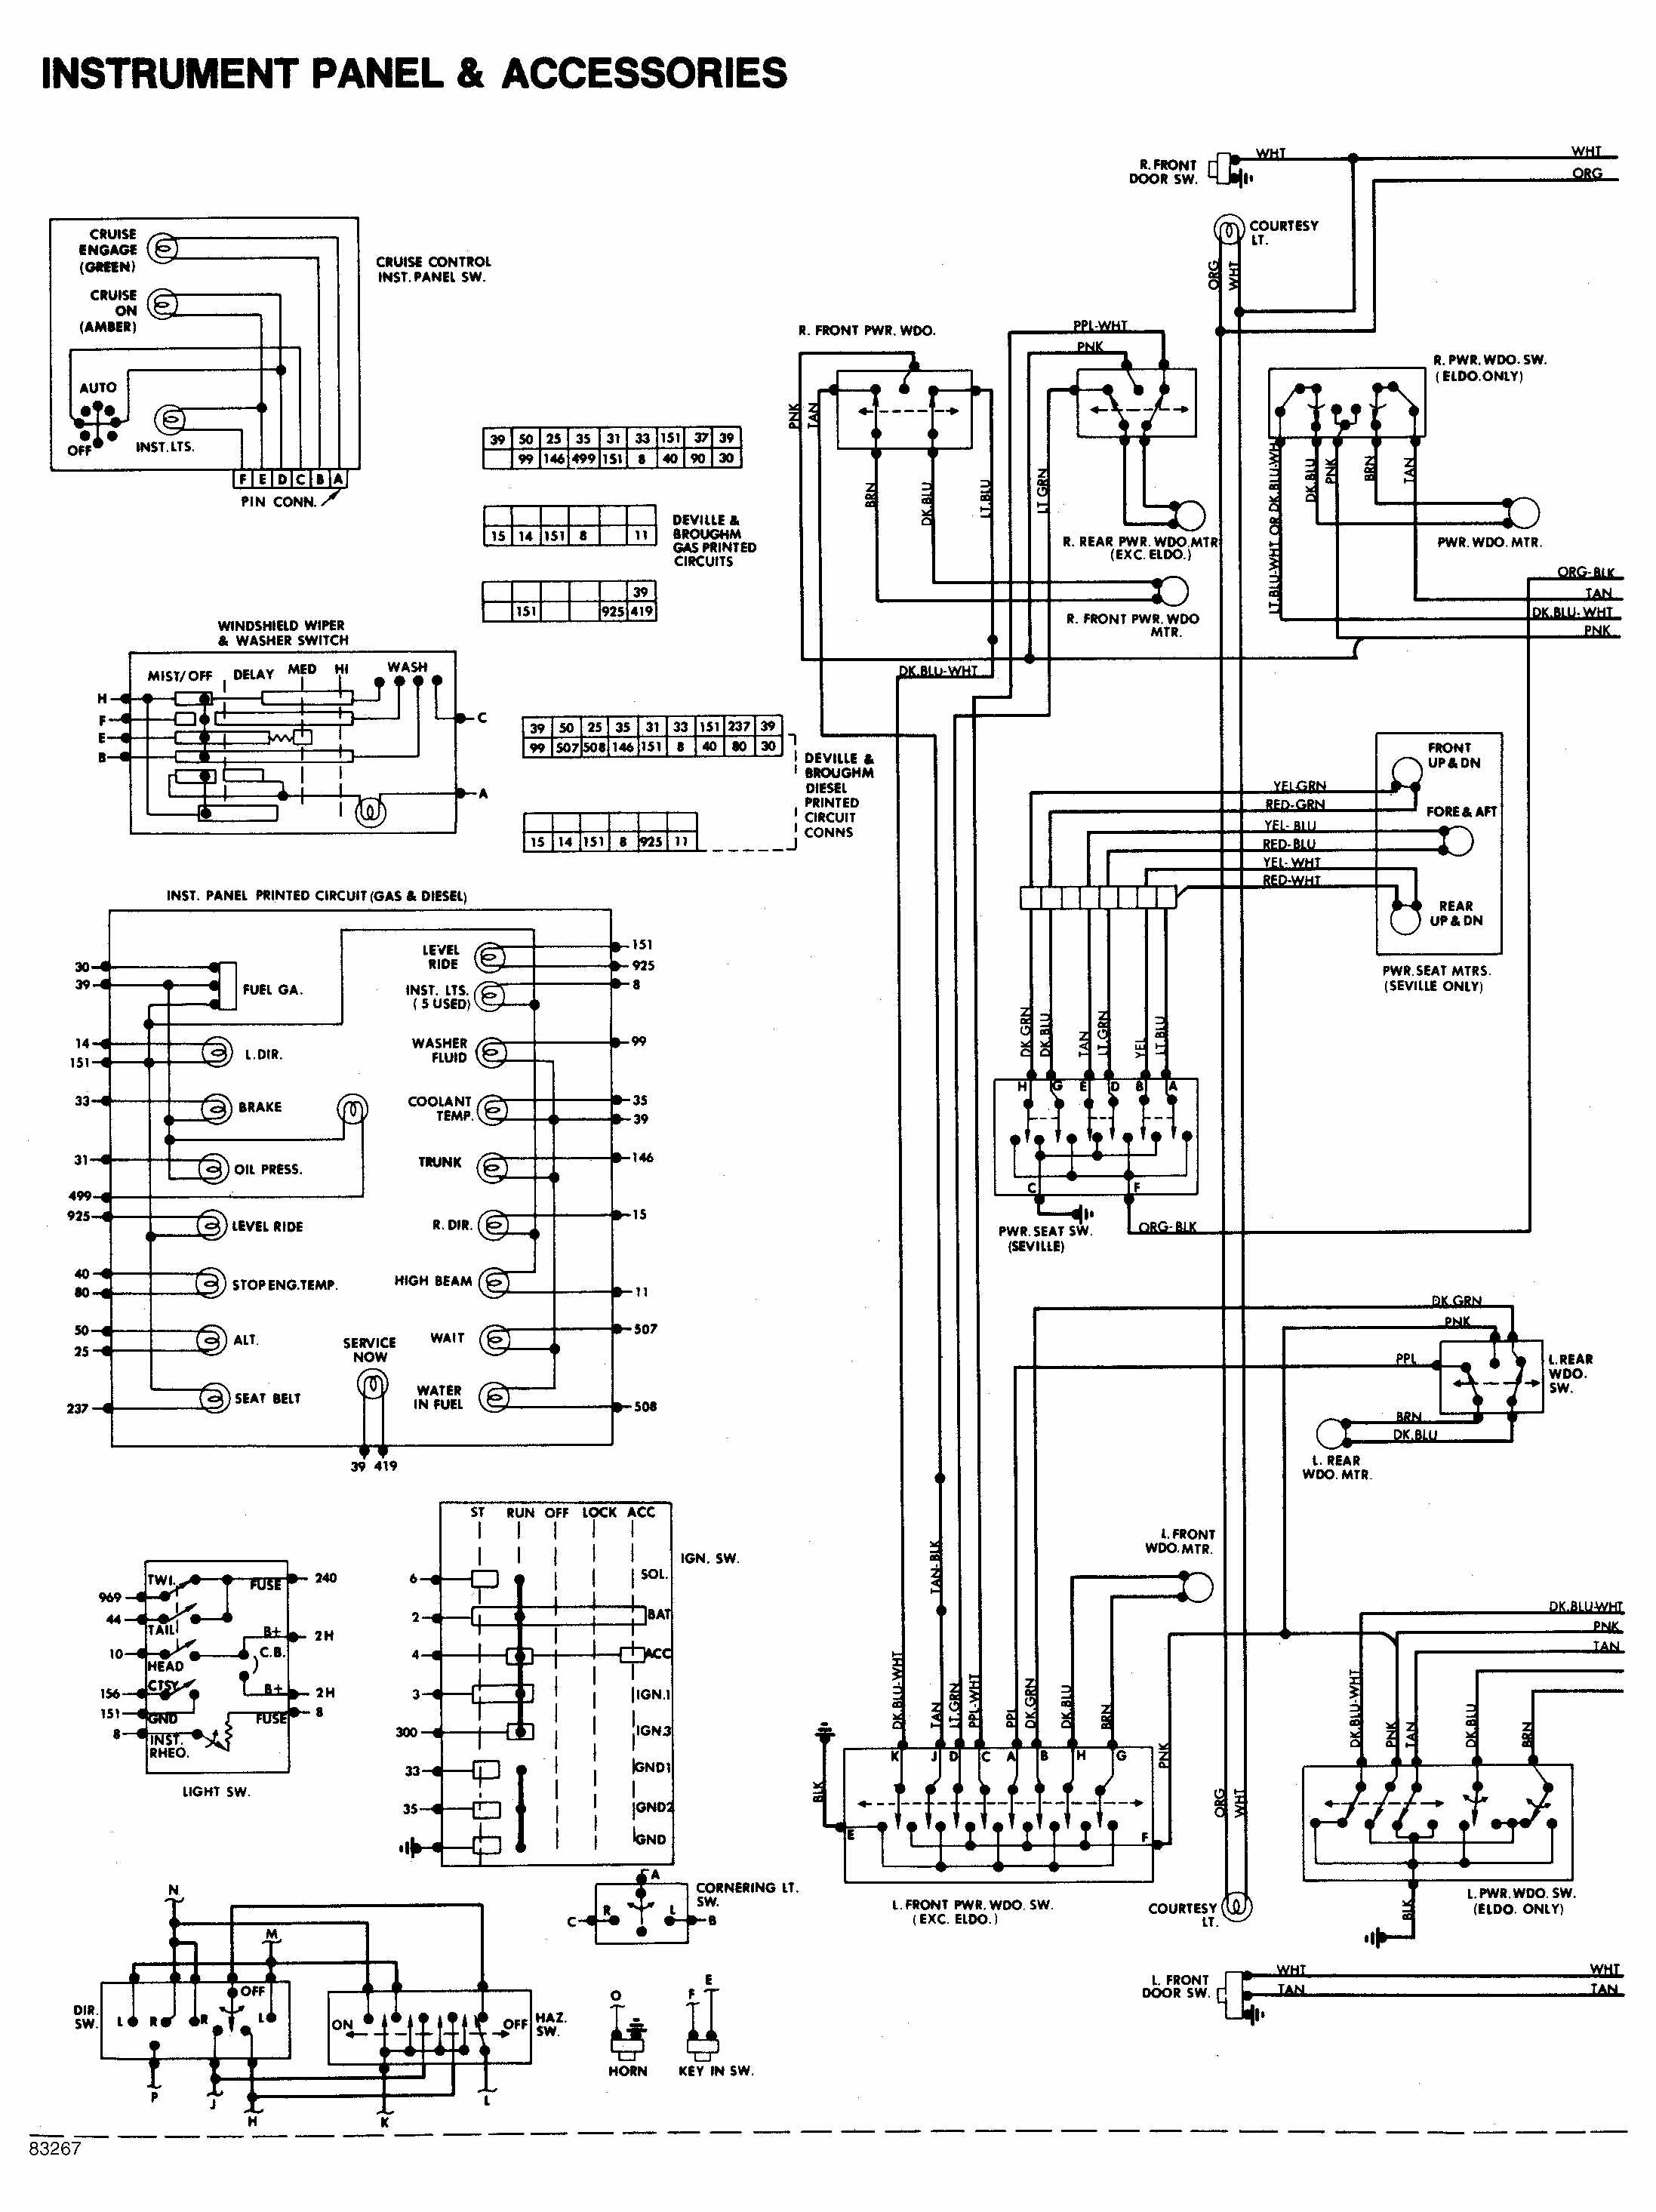 instrument panel and accessories wiring diagram of 1984 cadillac deville chevy diagrams 1996 cadillac deville wiring schematics at gsmx.co